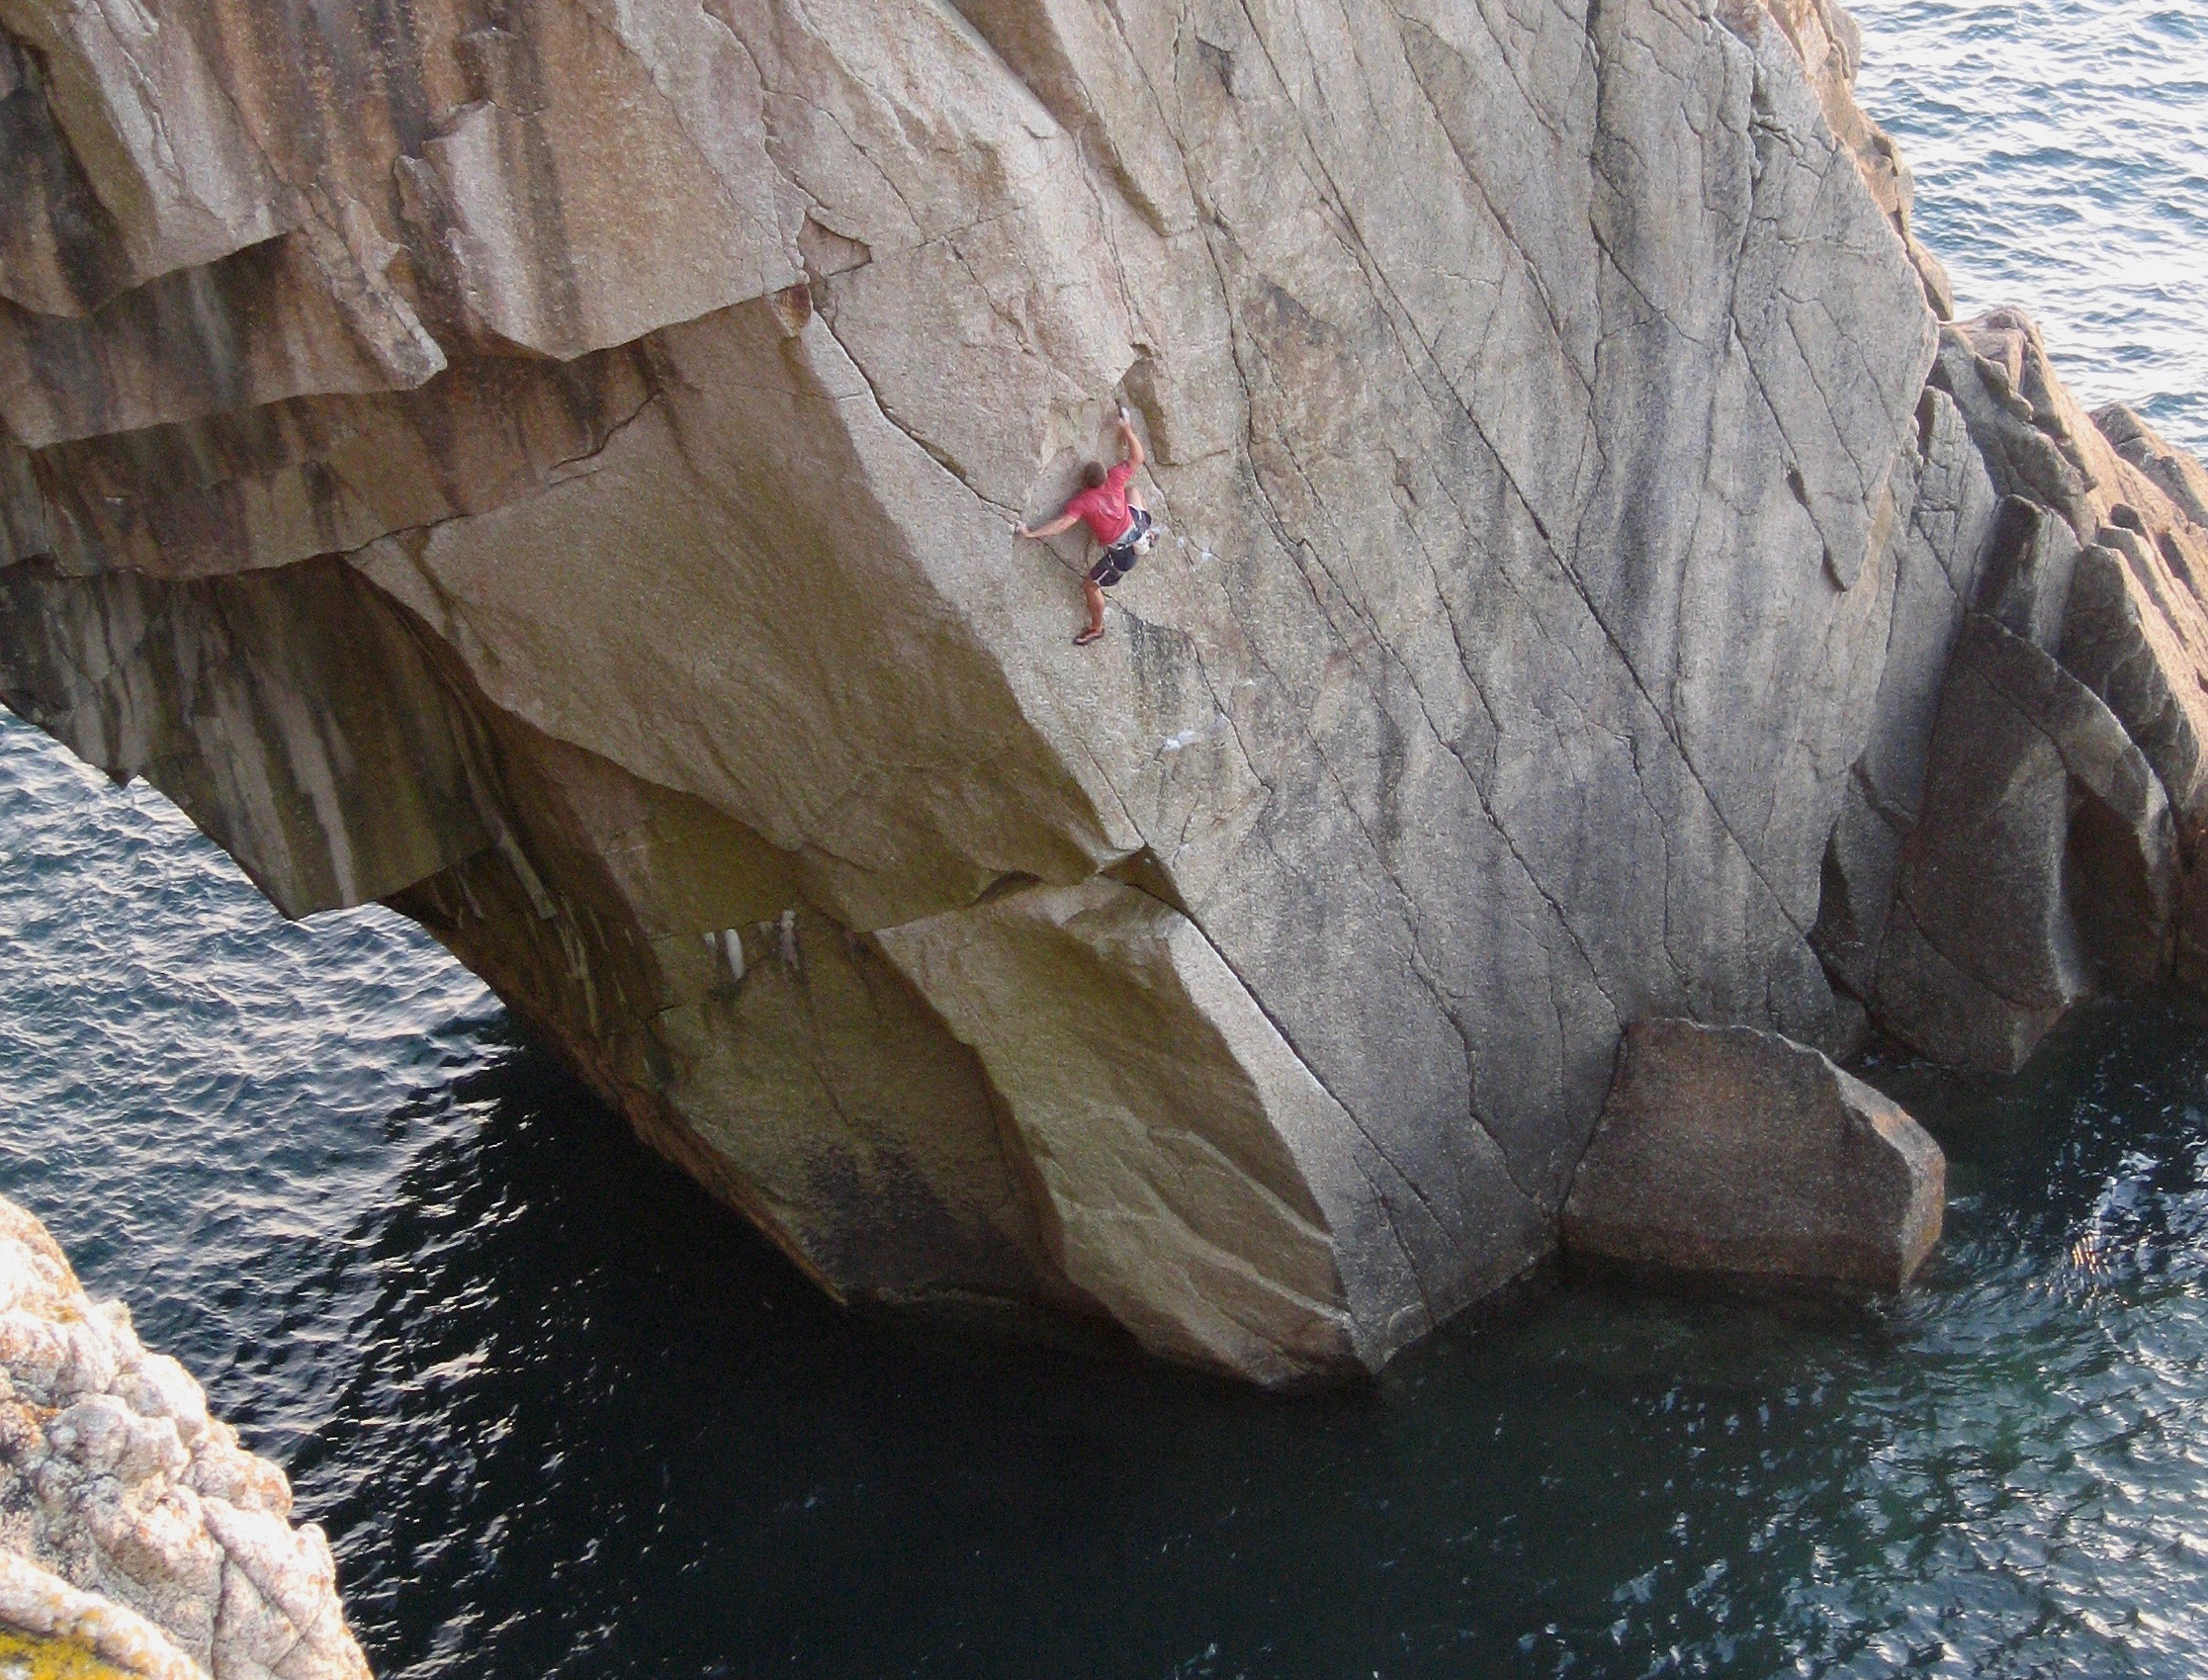 The Flying Dutchman 7b S2, Lundy. First DWS ascent.